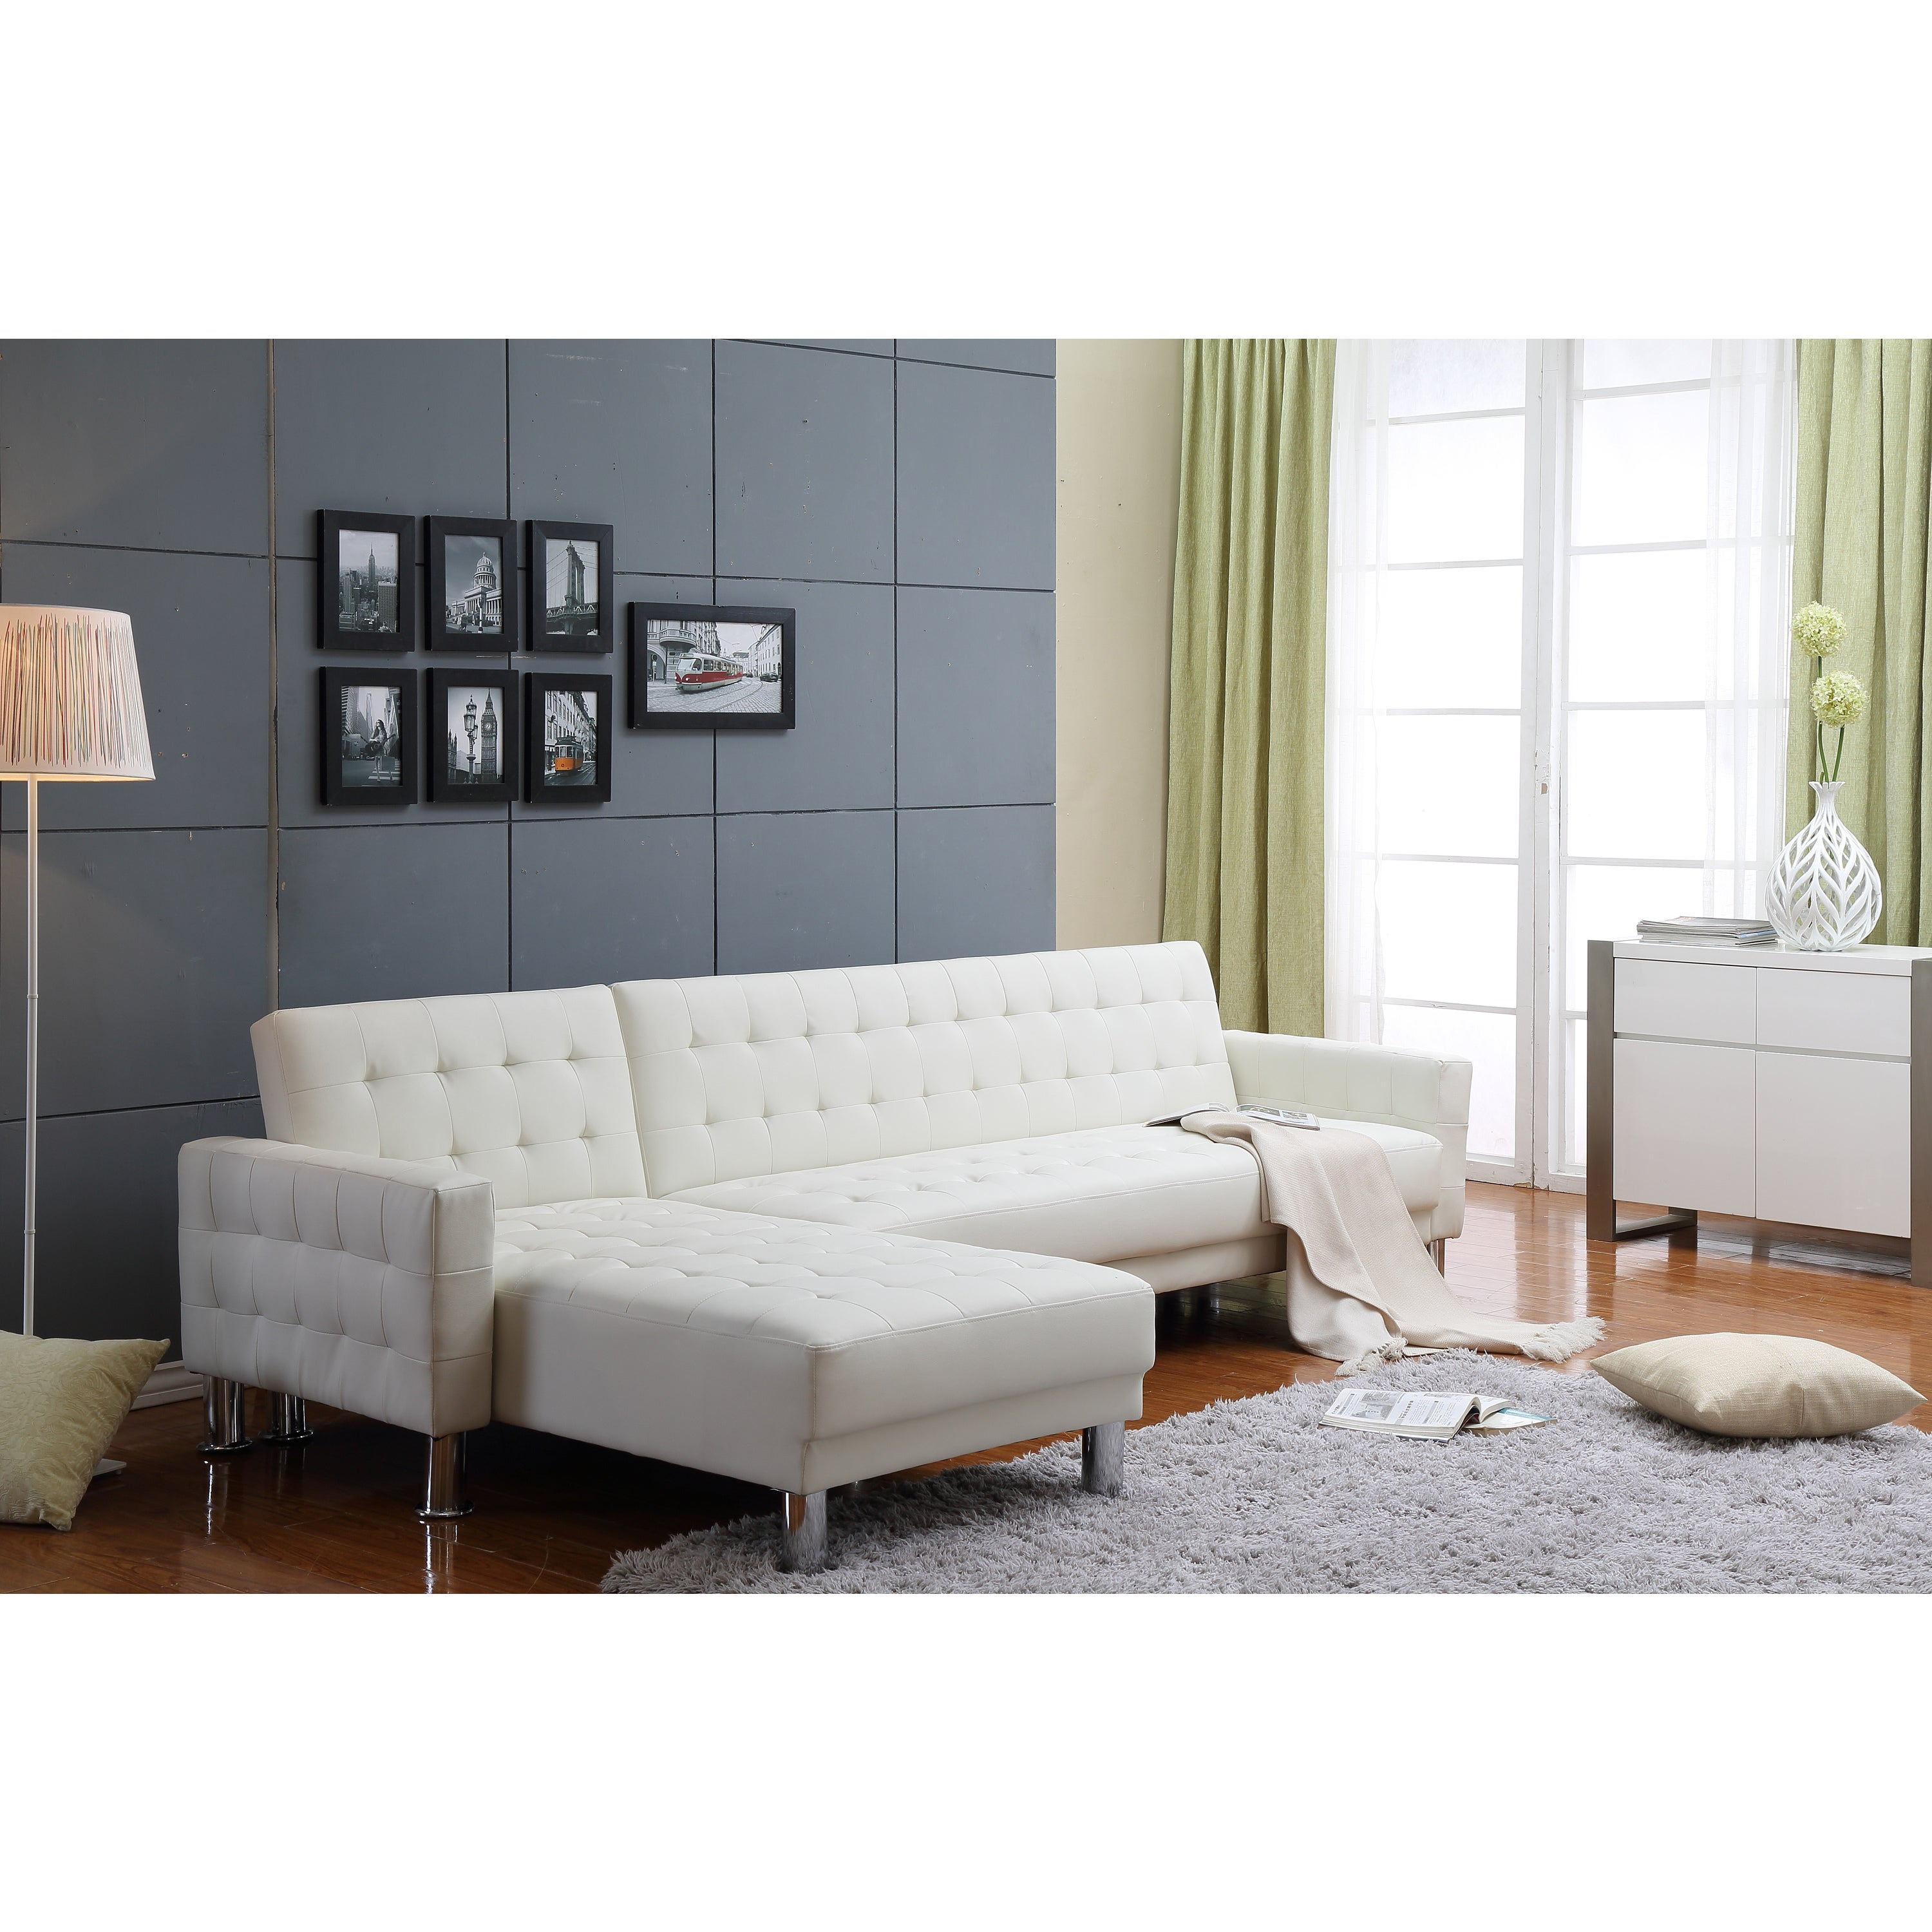 The Hom Marsden 2 Piece White Tufted Bi Cast Leather Sectional Sofa Bed Free Shipping Today 9991536